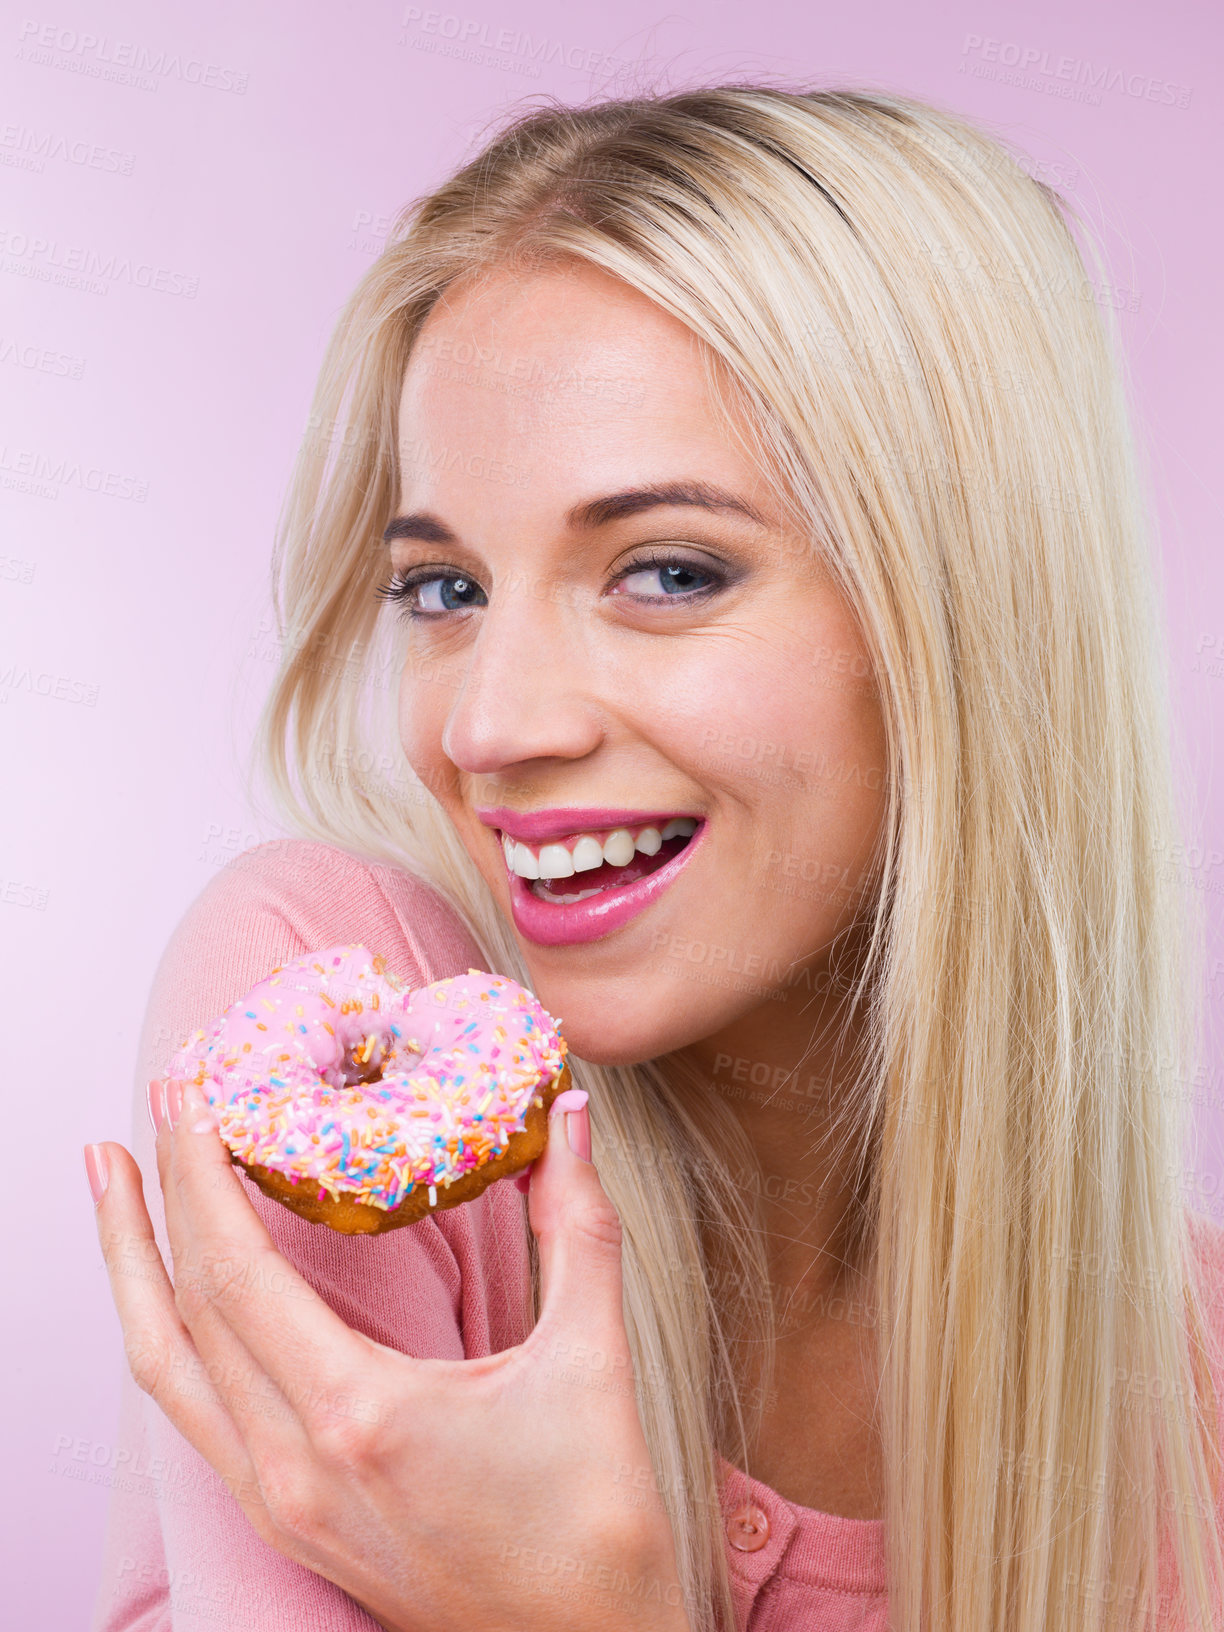 Buy stock photo Cropped shot of a woman eating a donut while isolated on pink